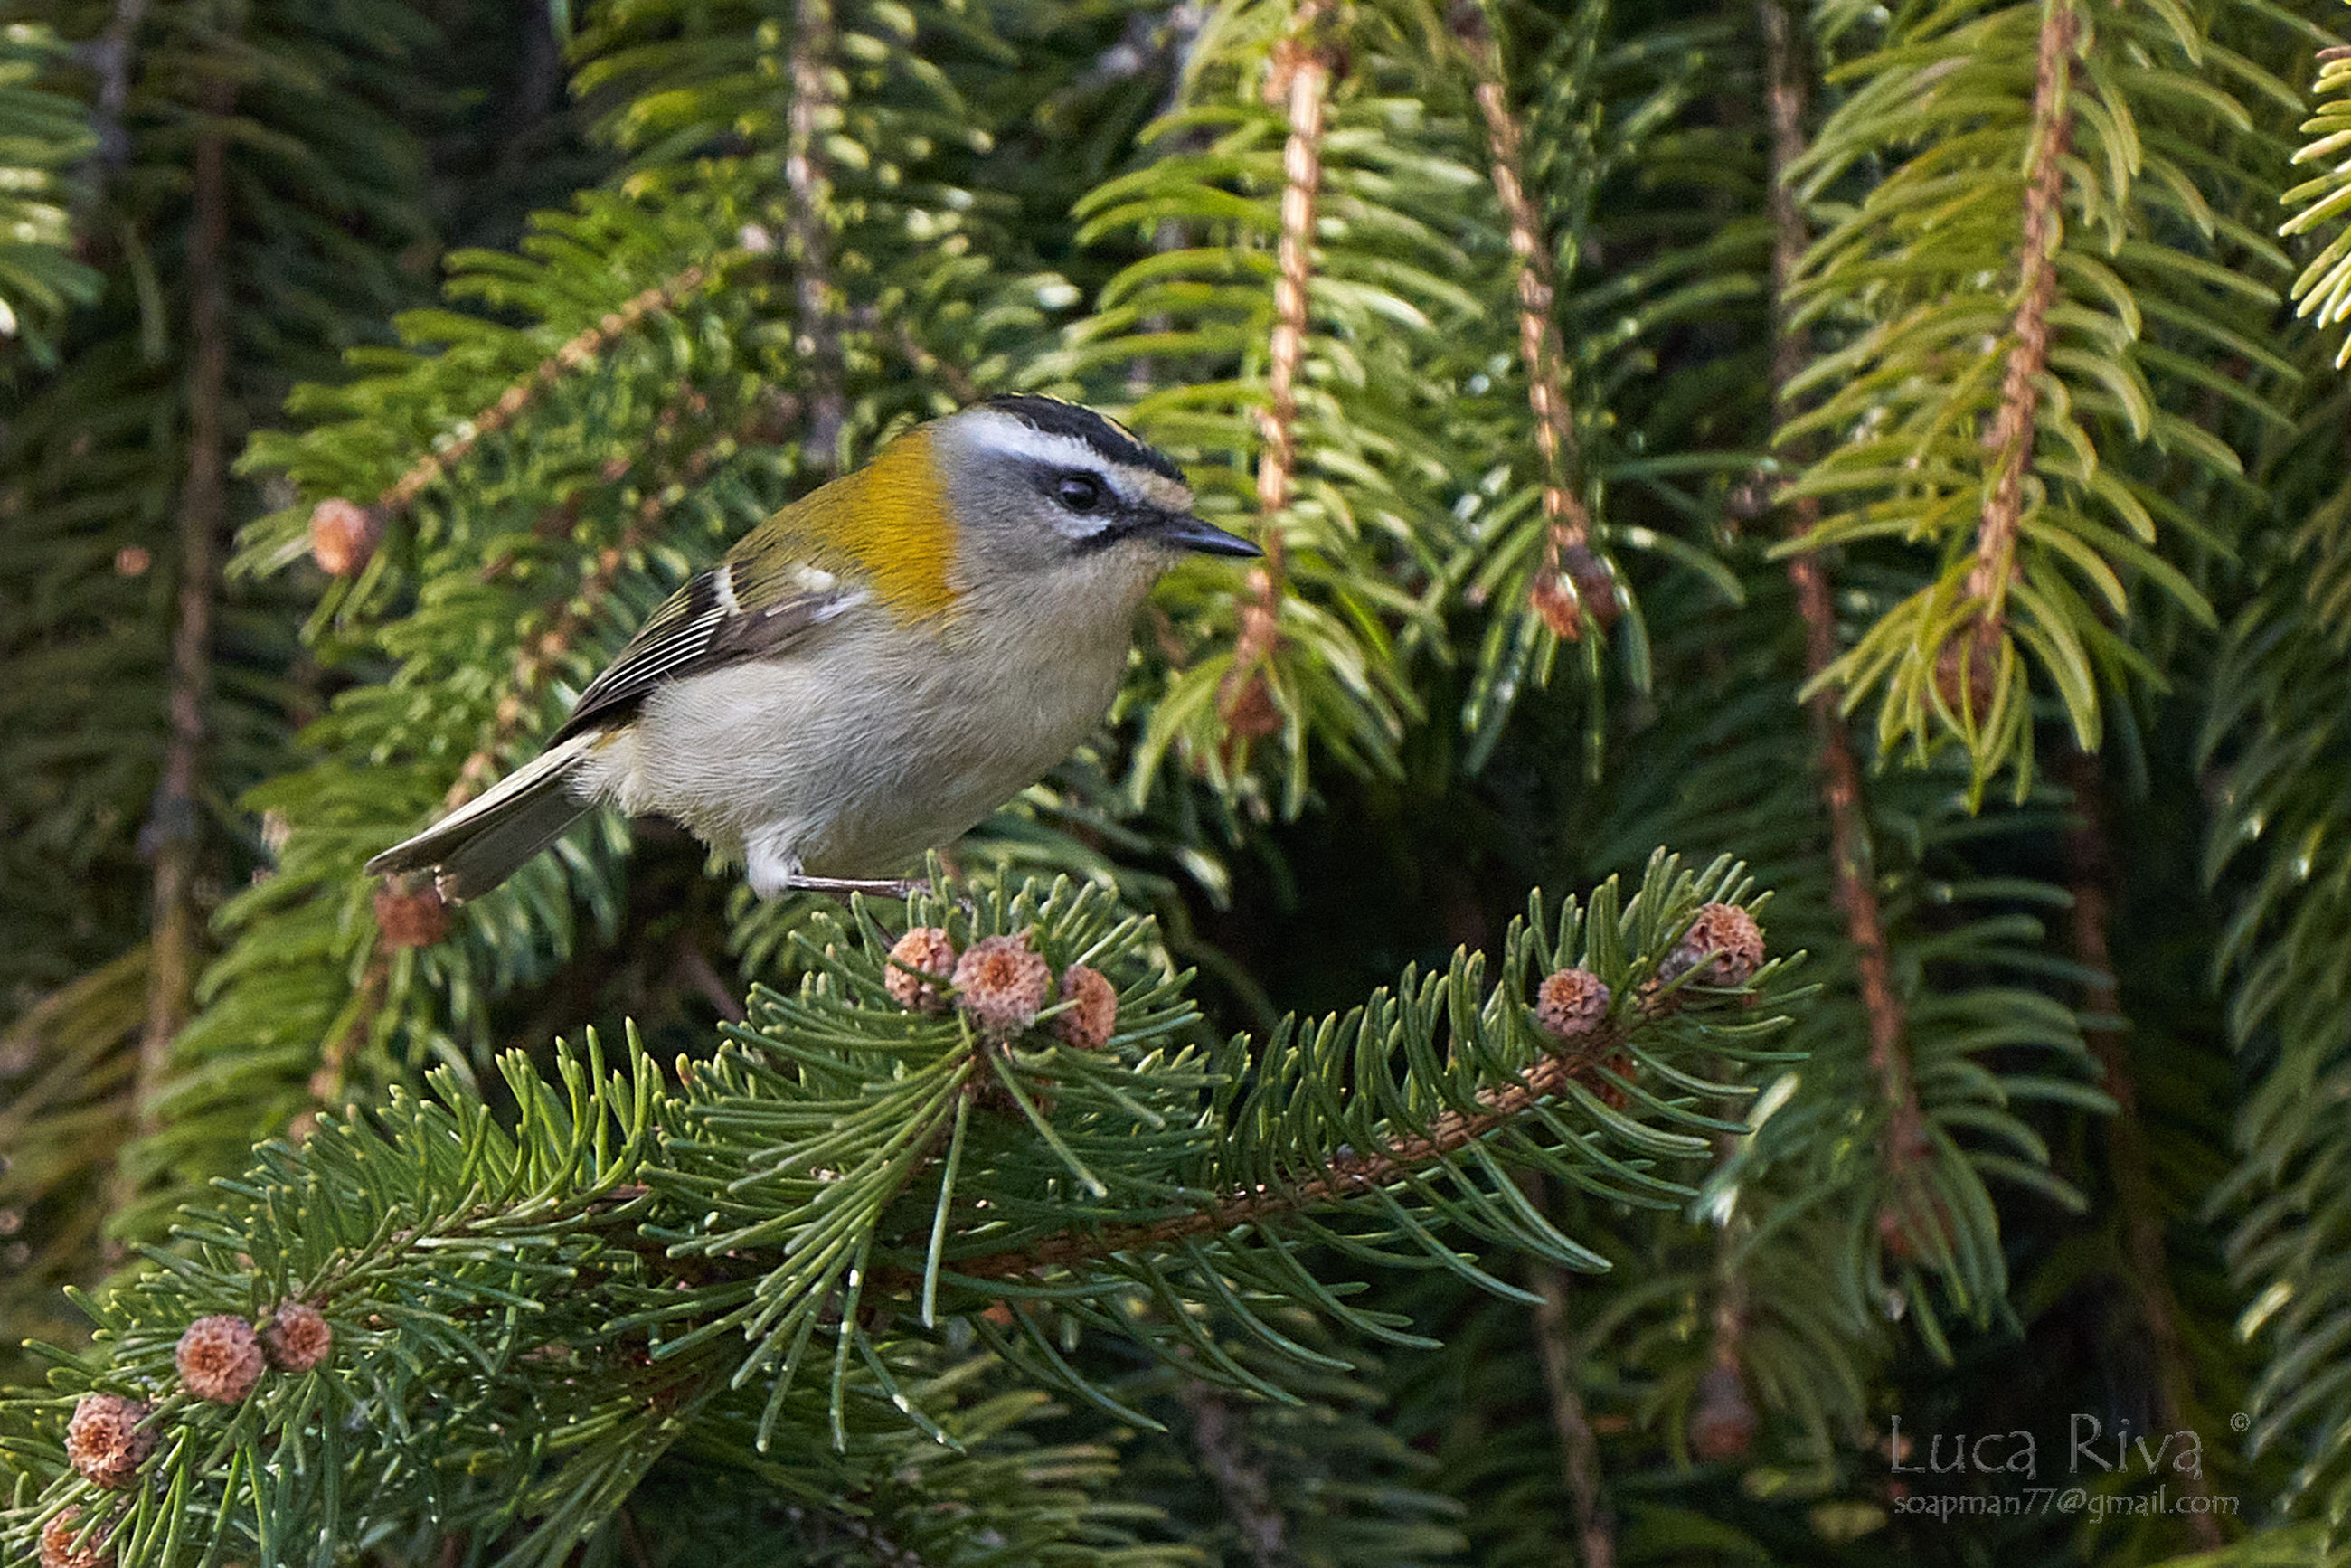 tree, animal themes, animal, animal wildlife, bird, plant, branch, christmas tree, wildlife, one animal, pine tree, coniferous tree, pinaceae, nature, perching, spruce, no people, green, focus on foreground, beauty in nature, outdoors, day, leaf, close-up